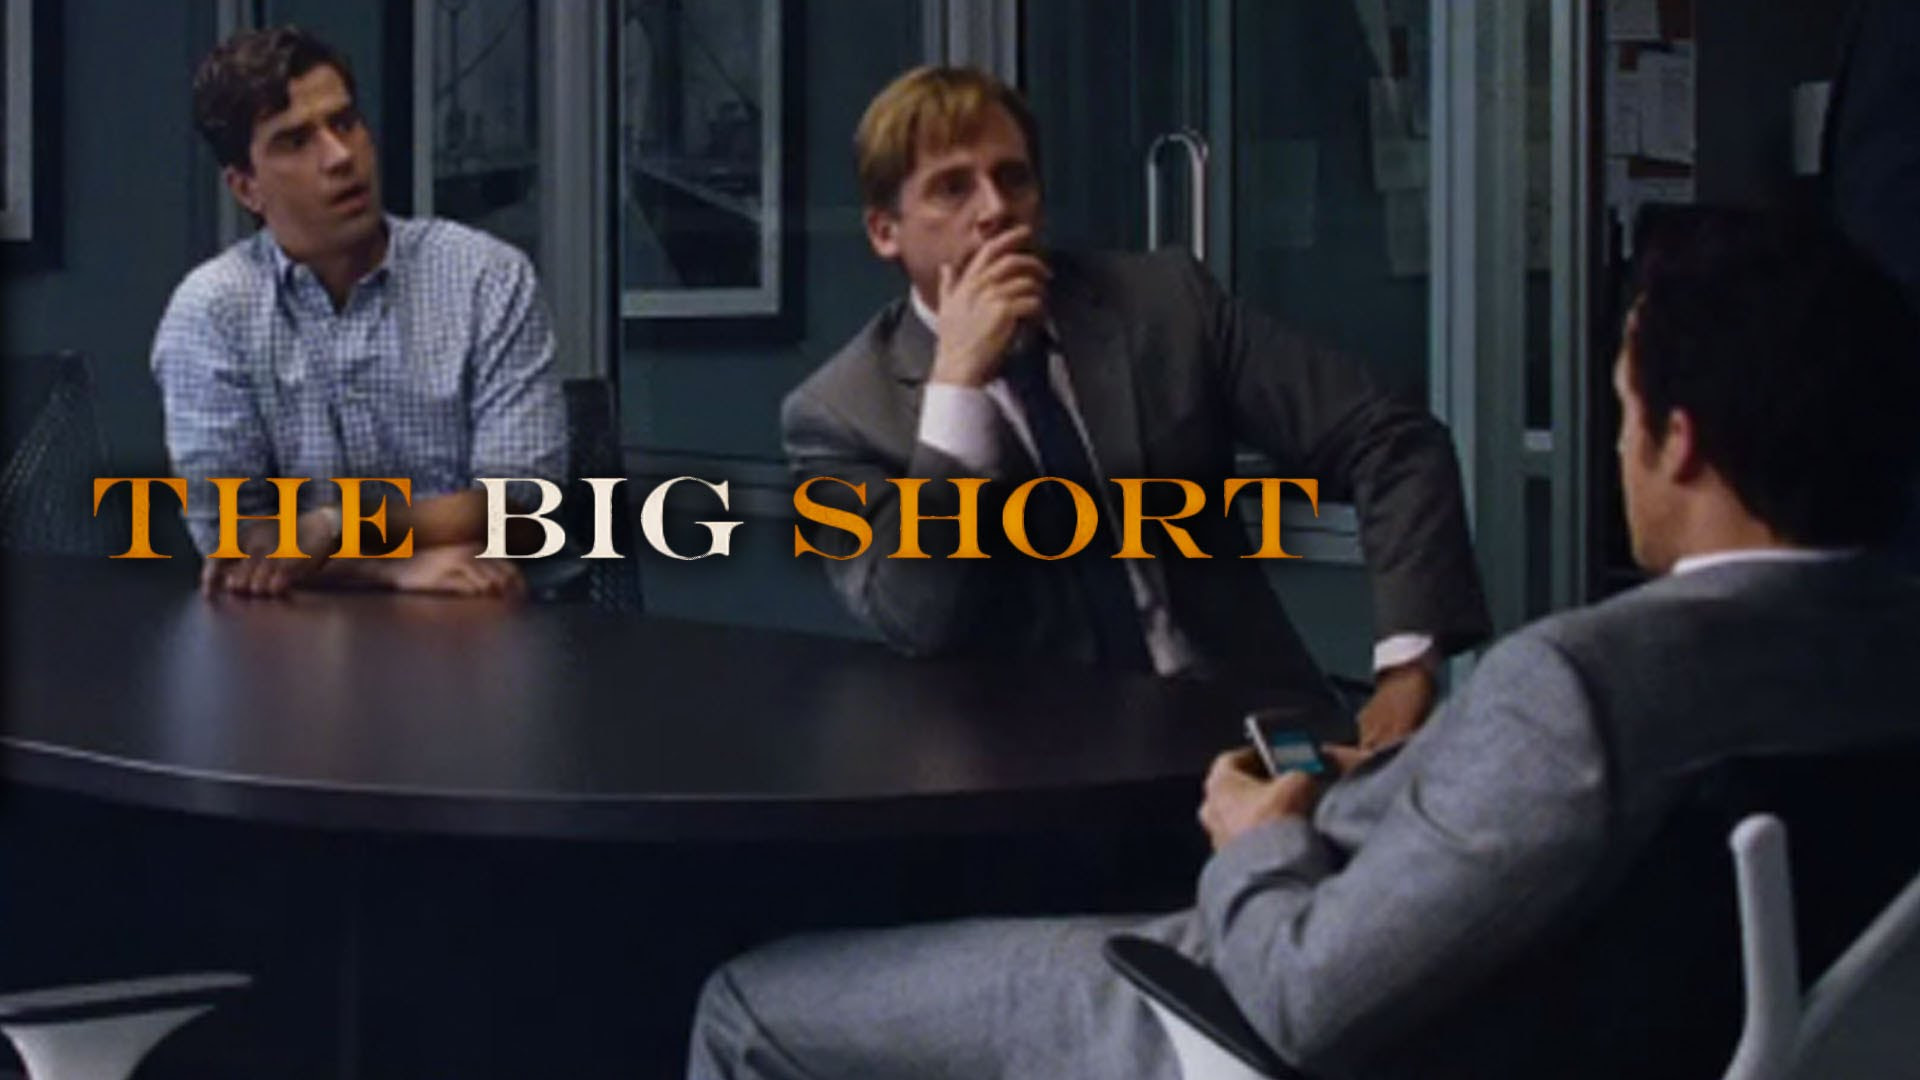 The Big Short – Not a Canadian Story